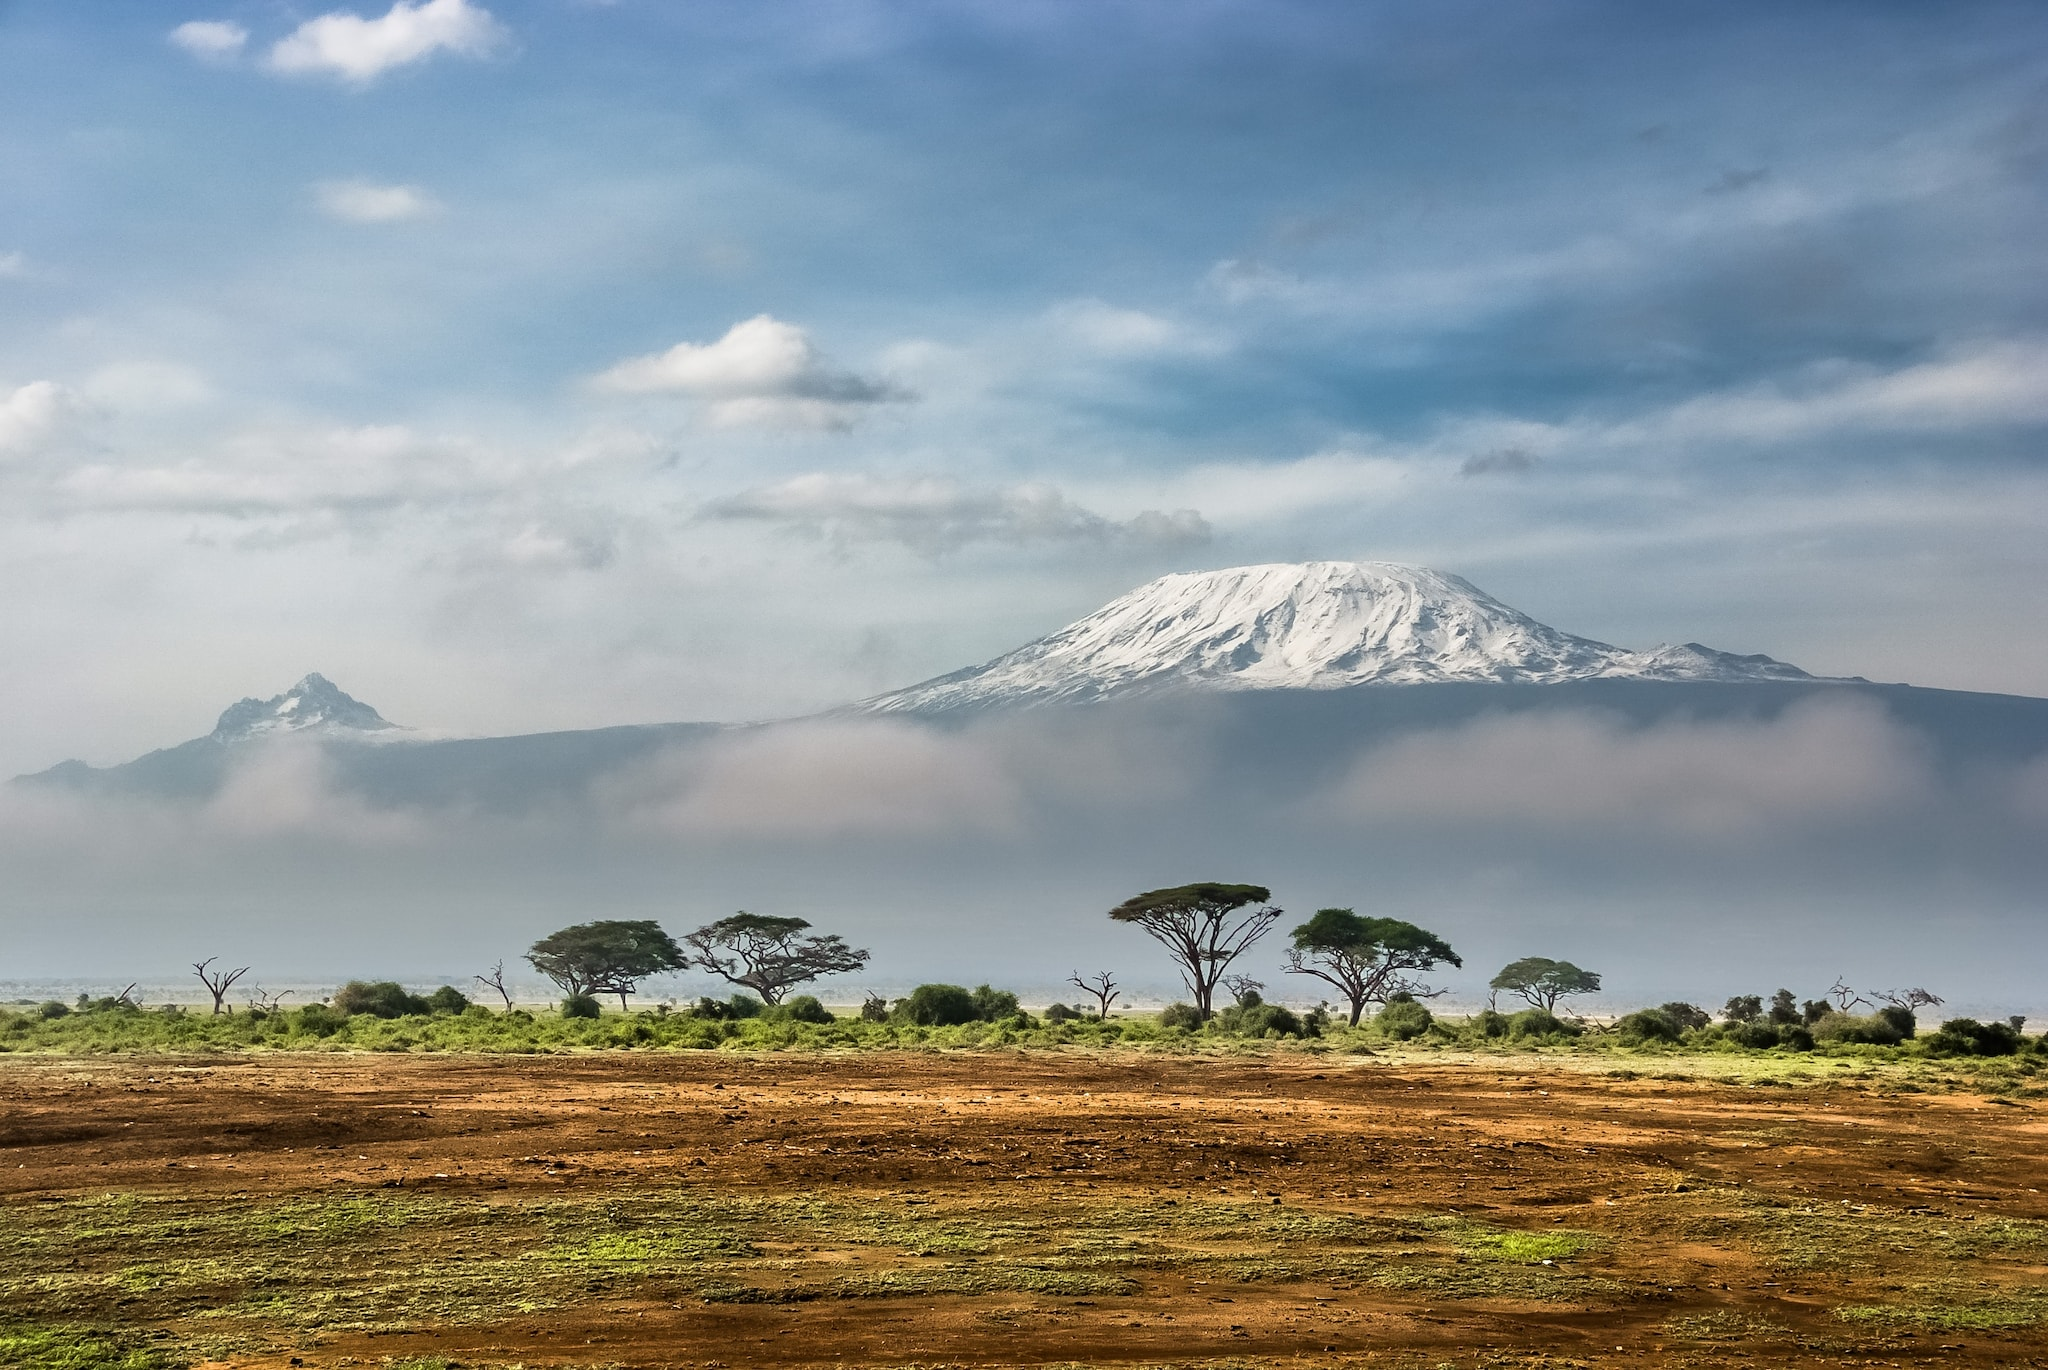 Snows of Kilimanjaro: Kilimanjaro is known for its exotic snow-capped top. However, due to increased global warming and climatic changes, more than 85 percent of the ice cover on Africa's highest mountain has melted, and it's only a question of time before the rest melts away too. The latest prediction suggests 2020 as the last time glacier ice will be there.